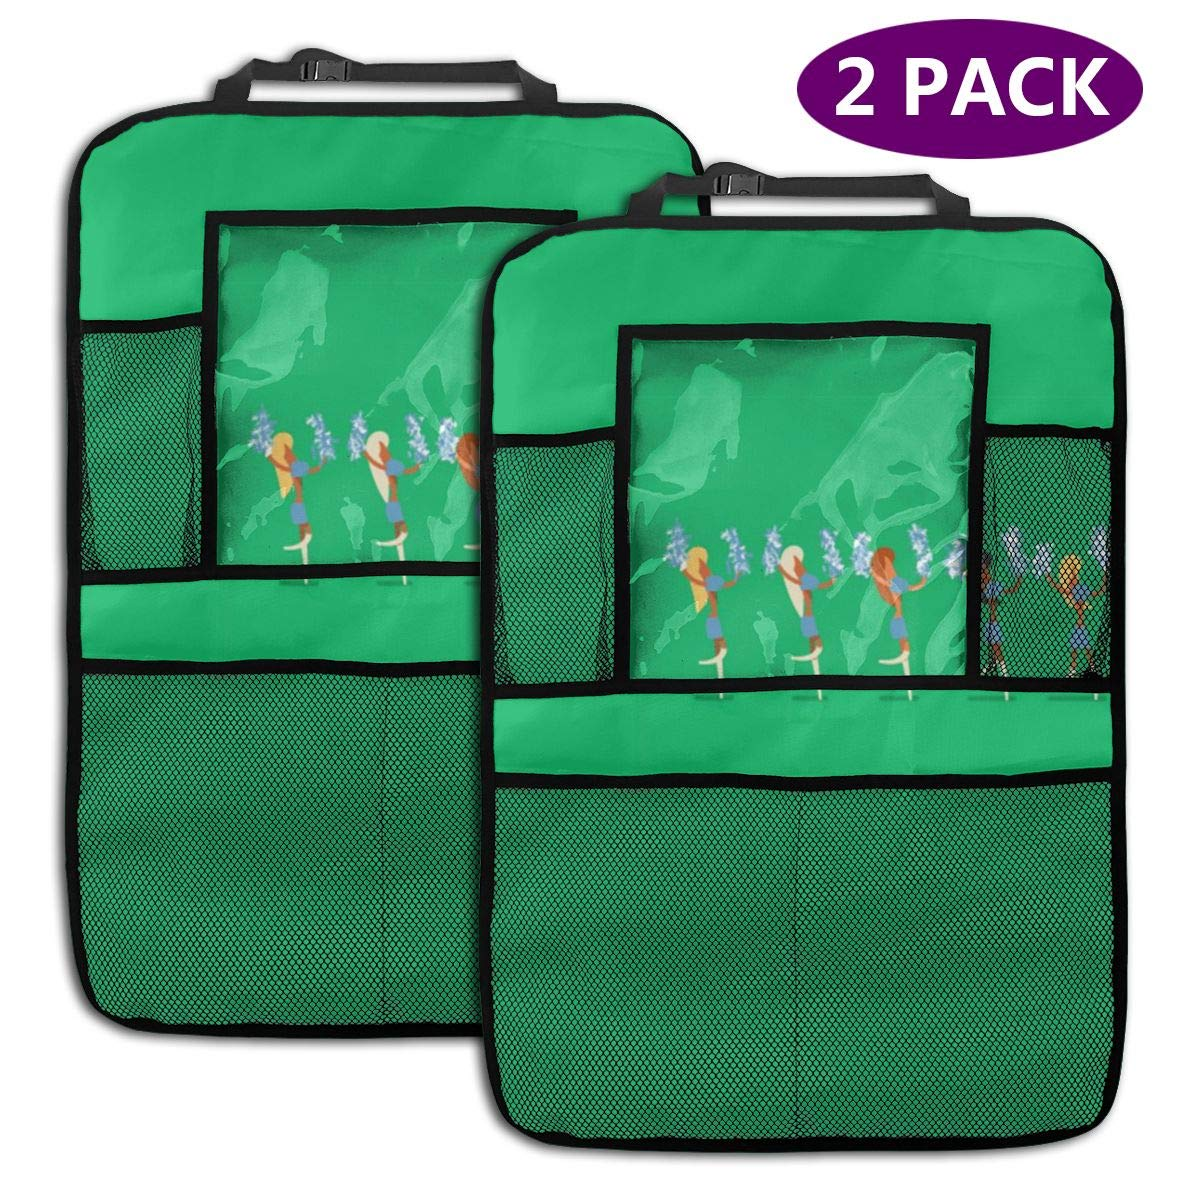 QF6FEICHAN Beauty Cheerleading Team Car Seat Back Protectors with Storage Pockets Kick Mats Accessories for Kids and Toddlers by QF6FEICHAN